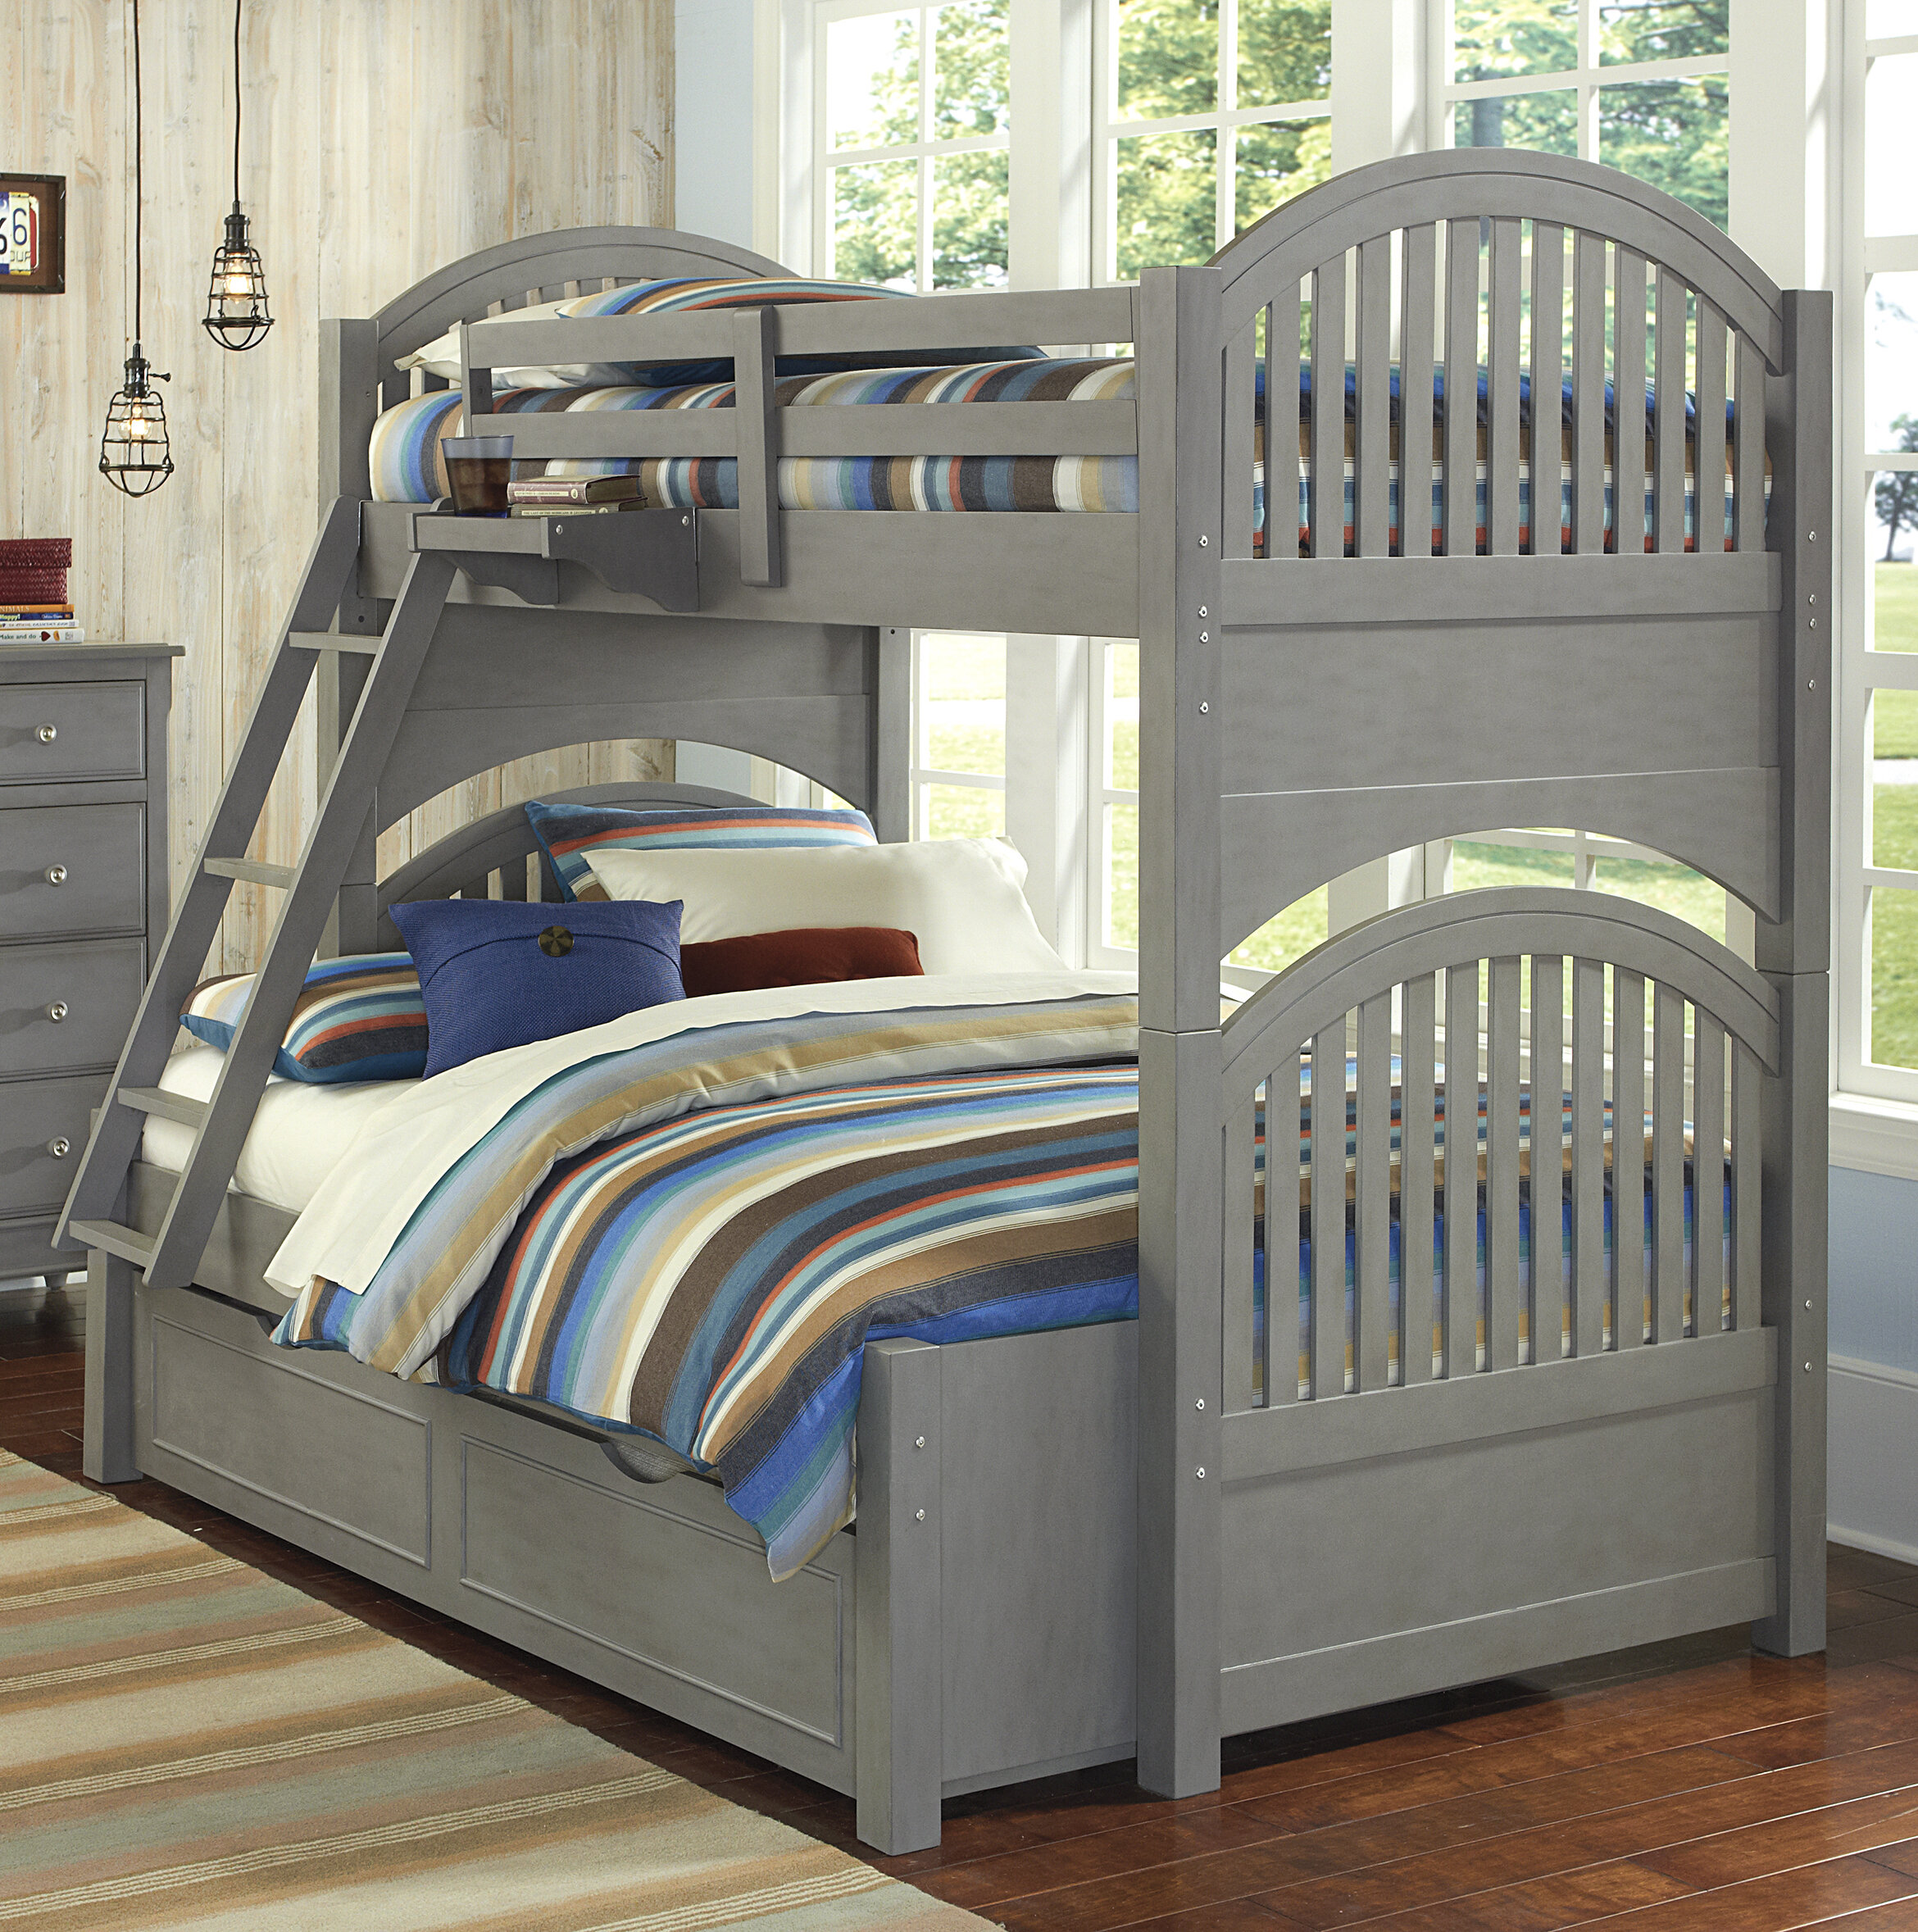 Harriet Bee Javin Twin Over Full Bunk Bed With Trundle